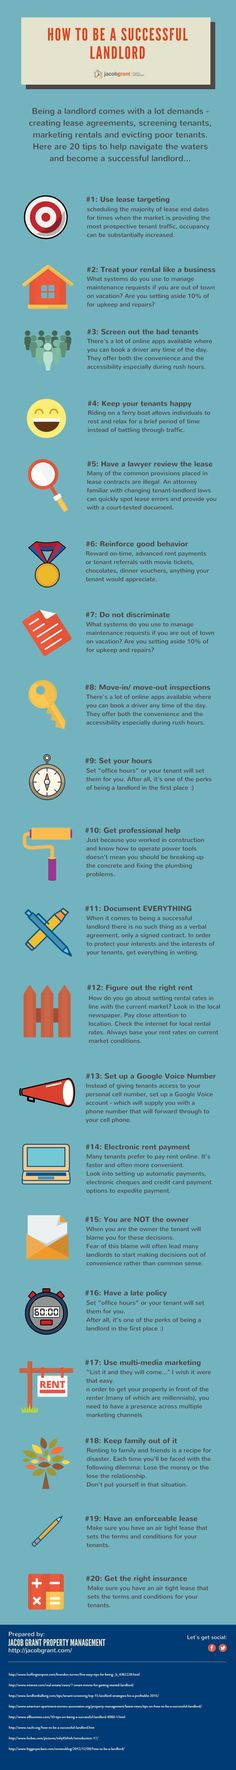 20 tips to be a successful landlord in 2015 Income Property, Rental Property, Investment Property, Investment Advice, Real Estate Business, Real Estate Tips, Real Estate Investing, Home Ownership, The Ranch